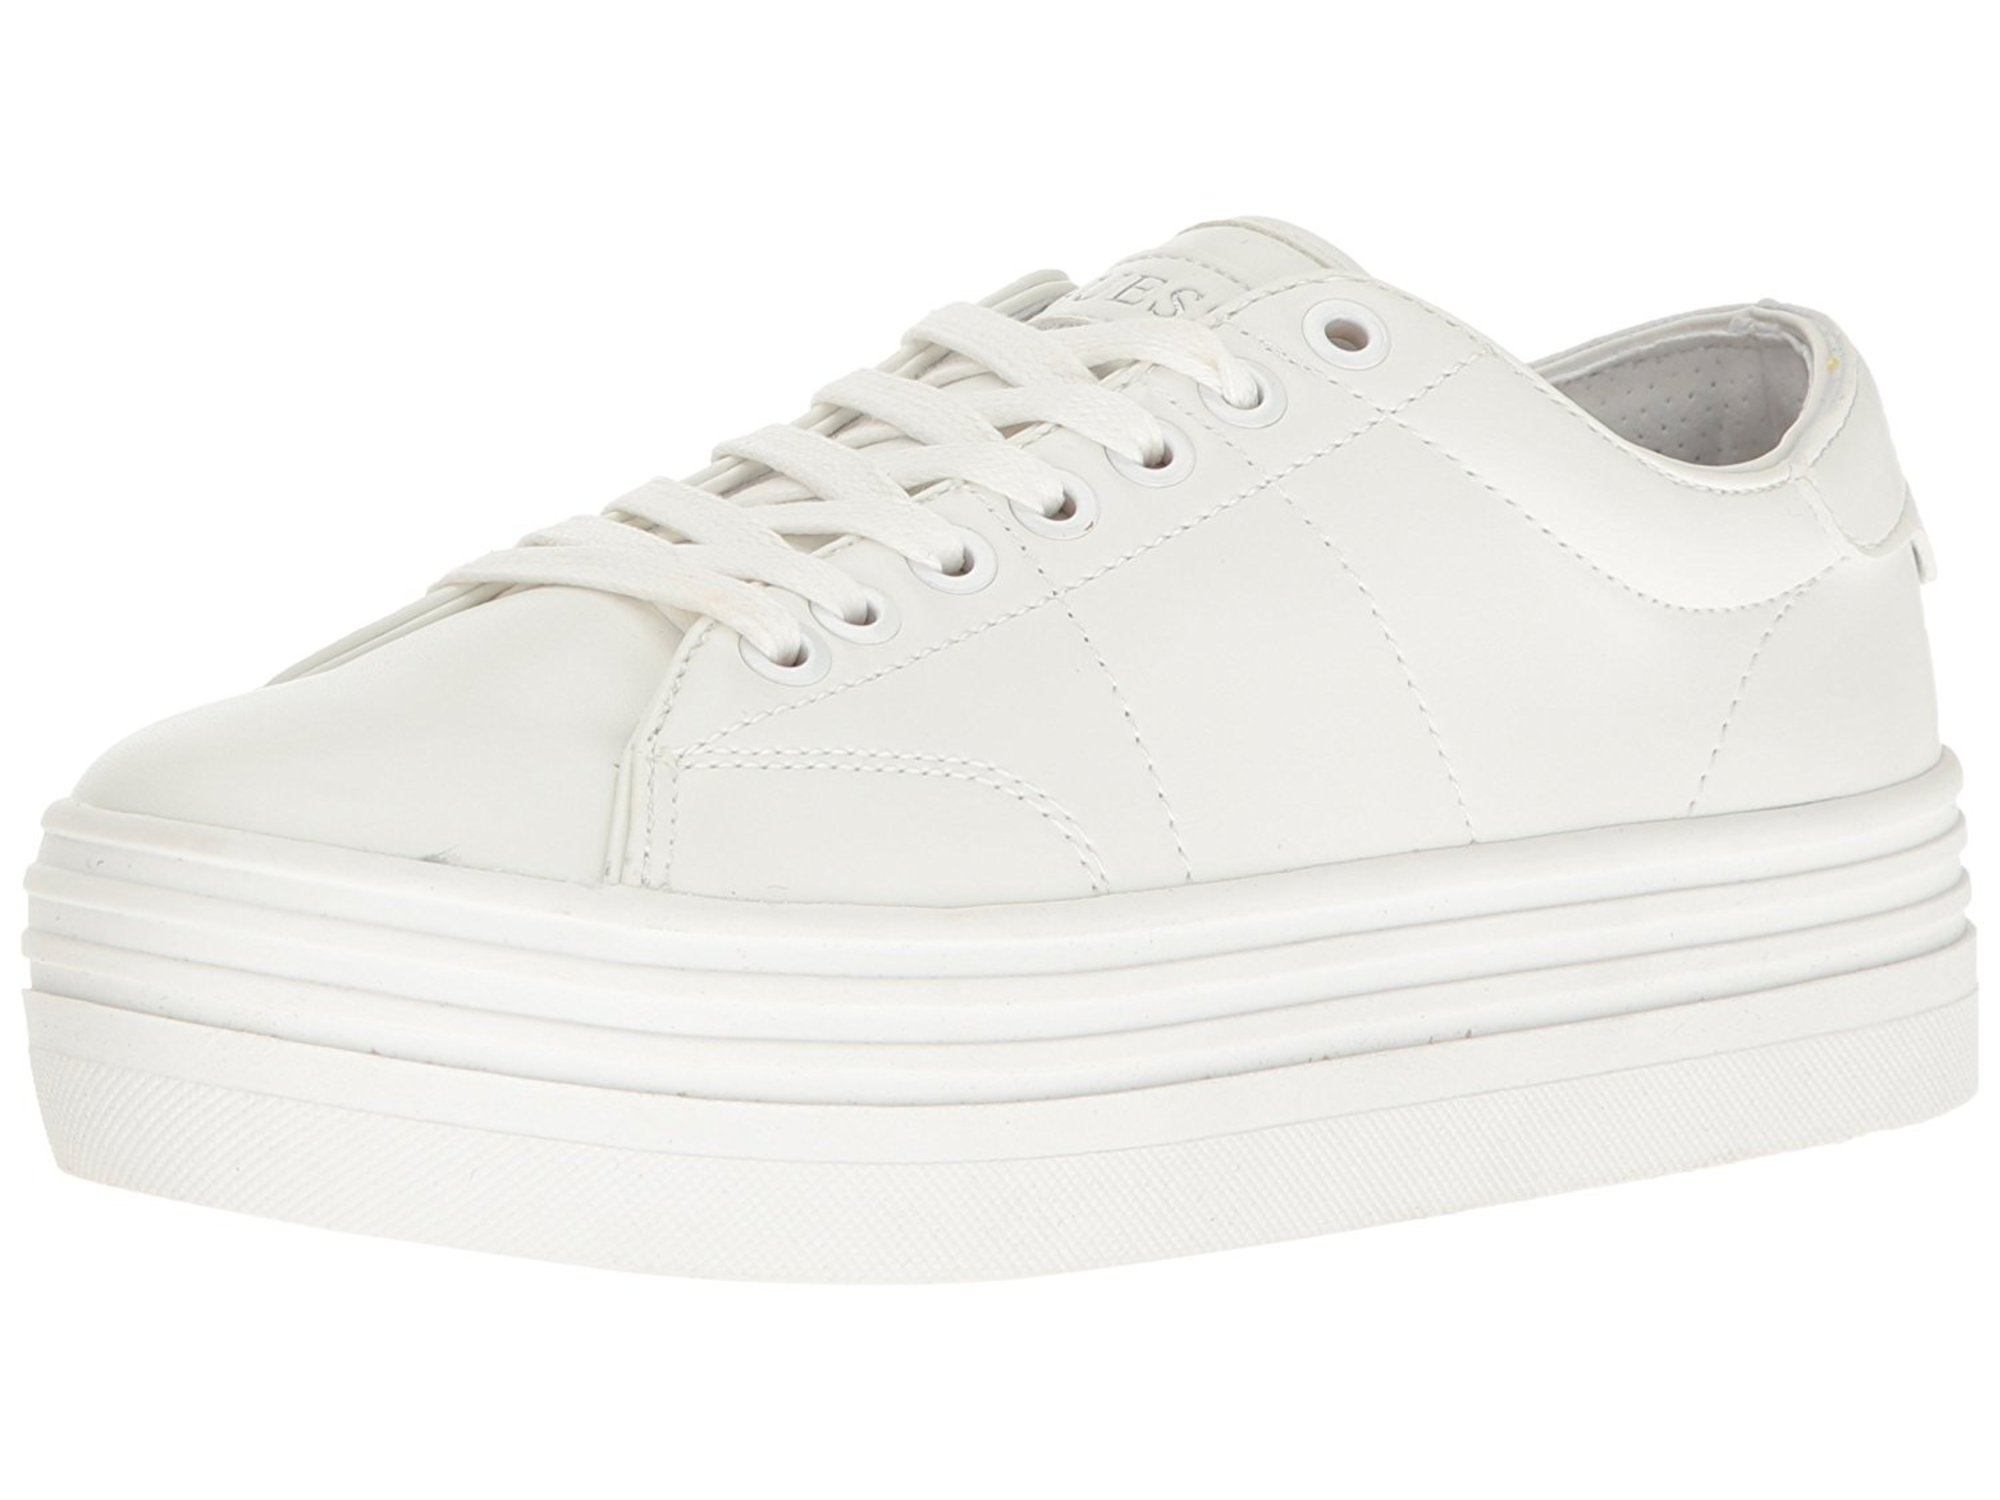 GUESS Womens Alexea2 Low Top Lace Up Fashion Sneakers by Guess